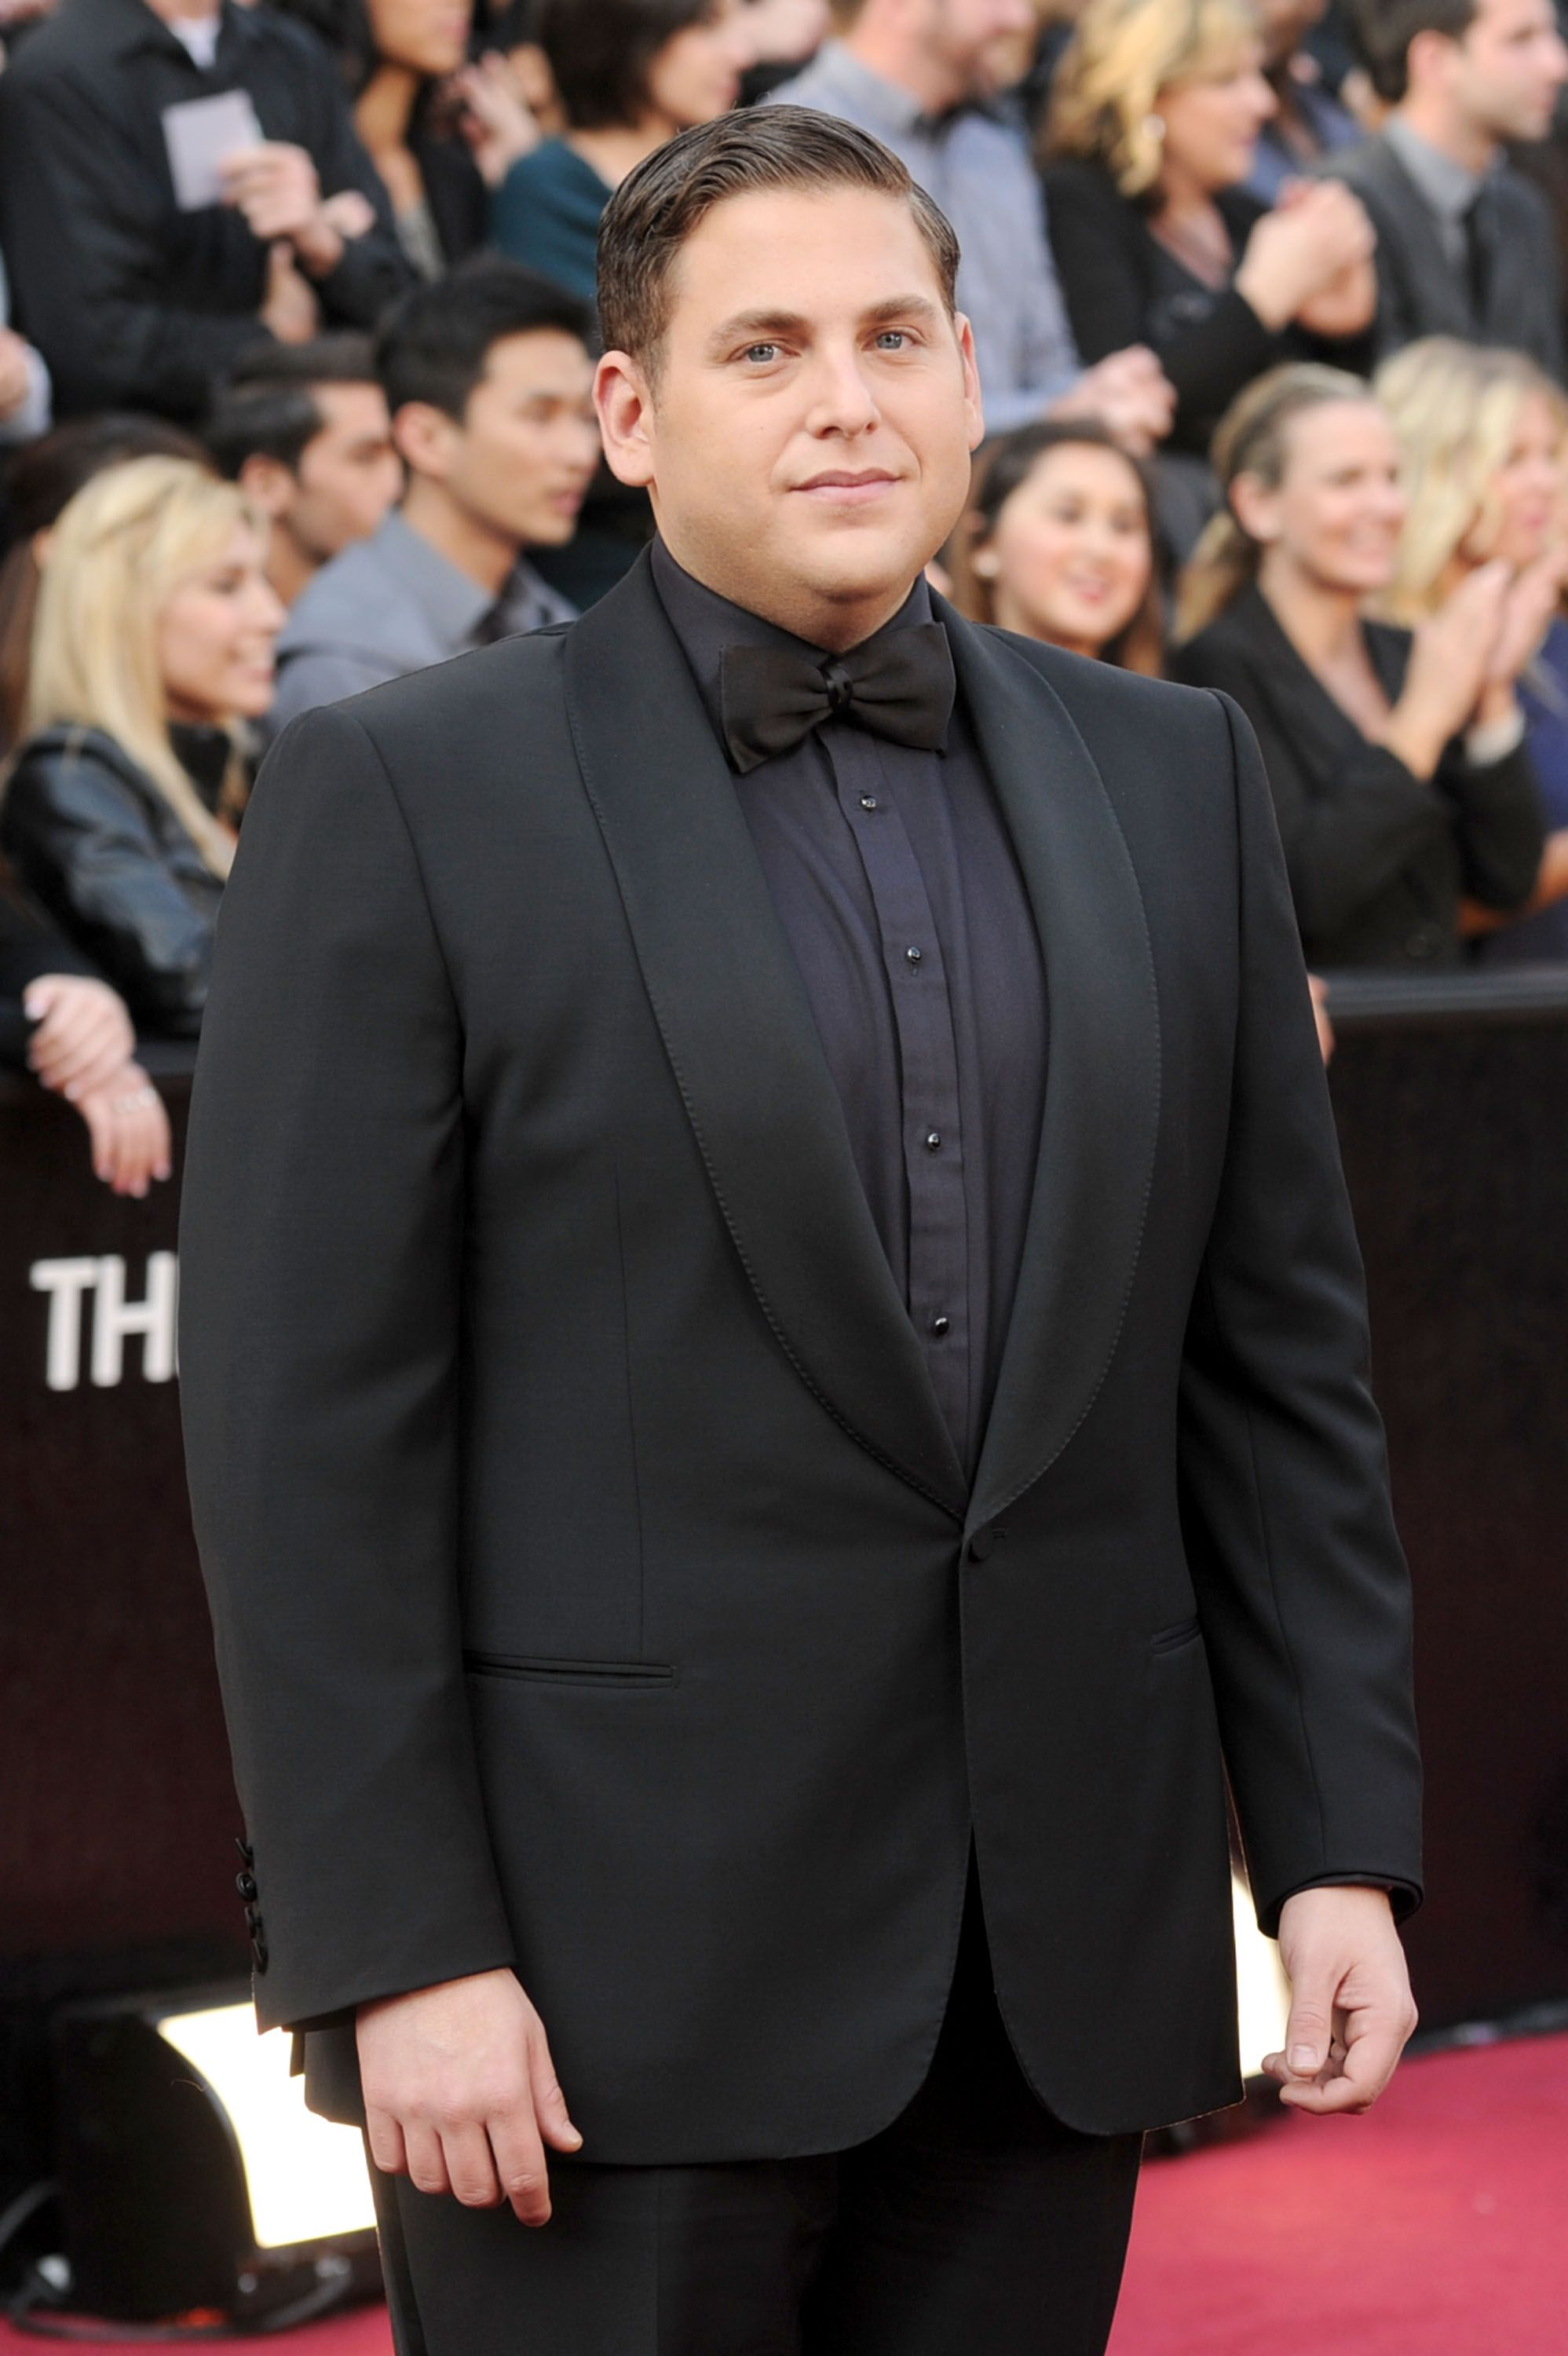 Jonah Hill looks totally different (and much more buff) than you remember